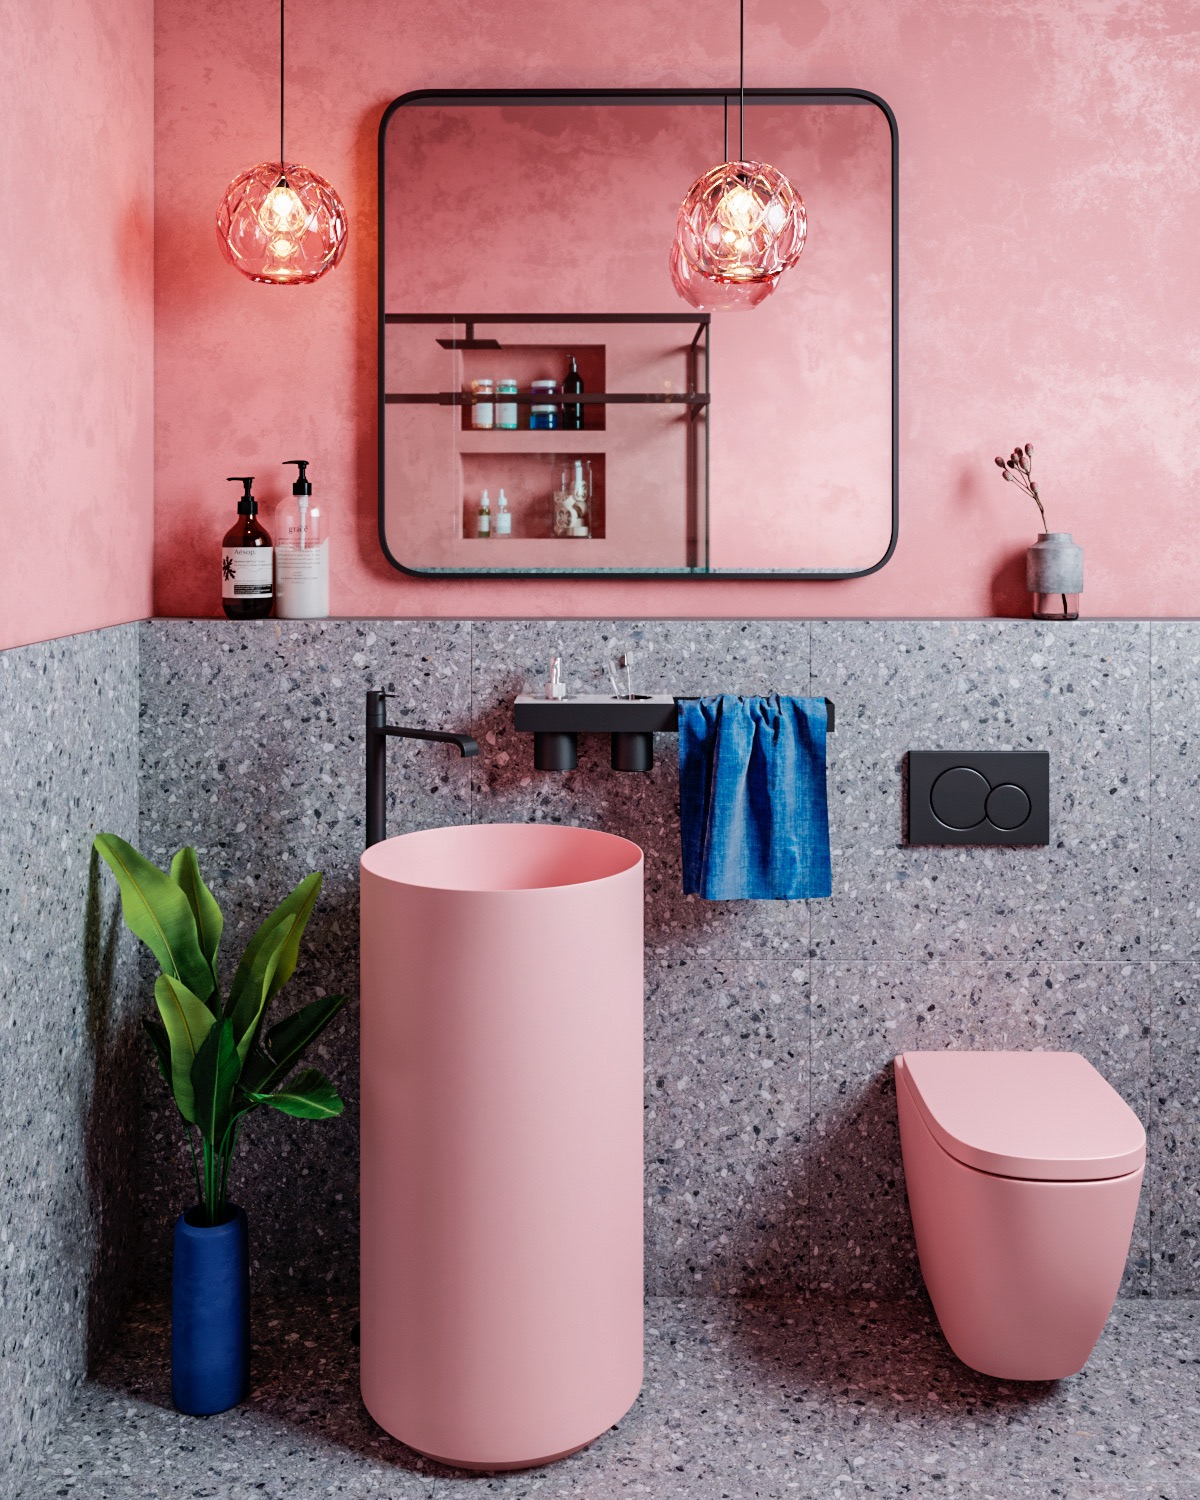 5 Pink Bathrooms With Tips, Photos And Accessories To Help You